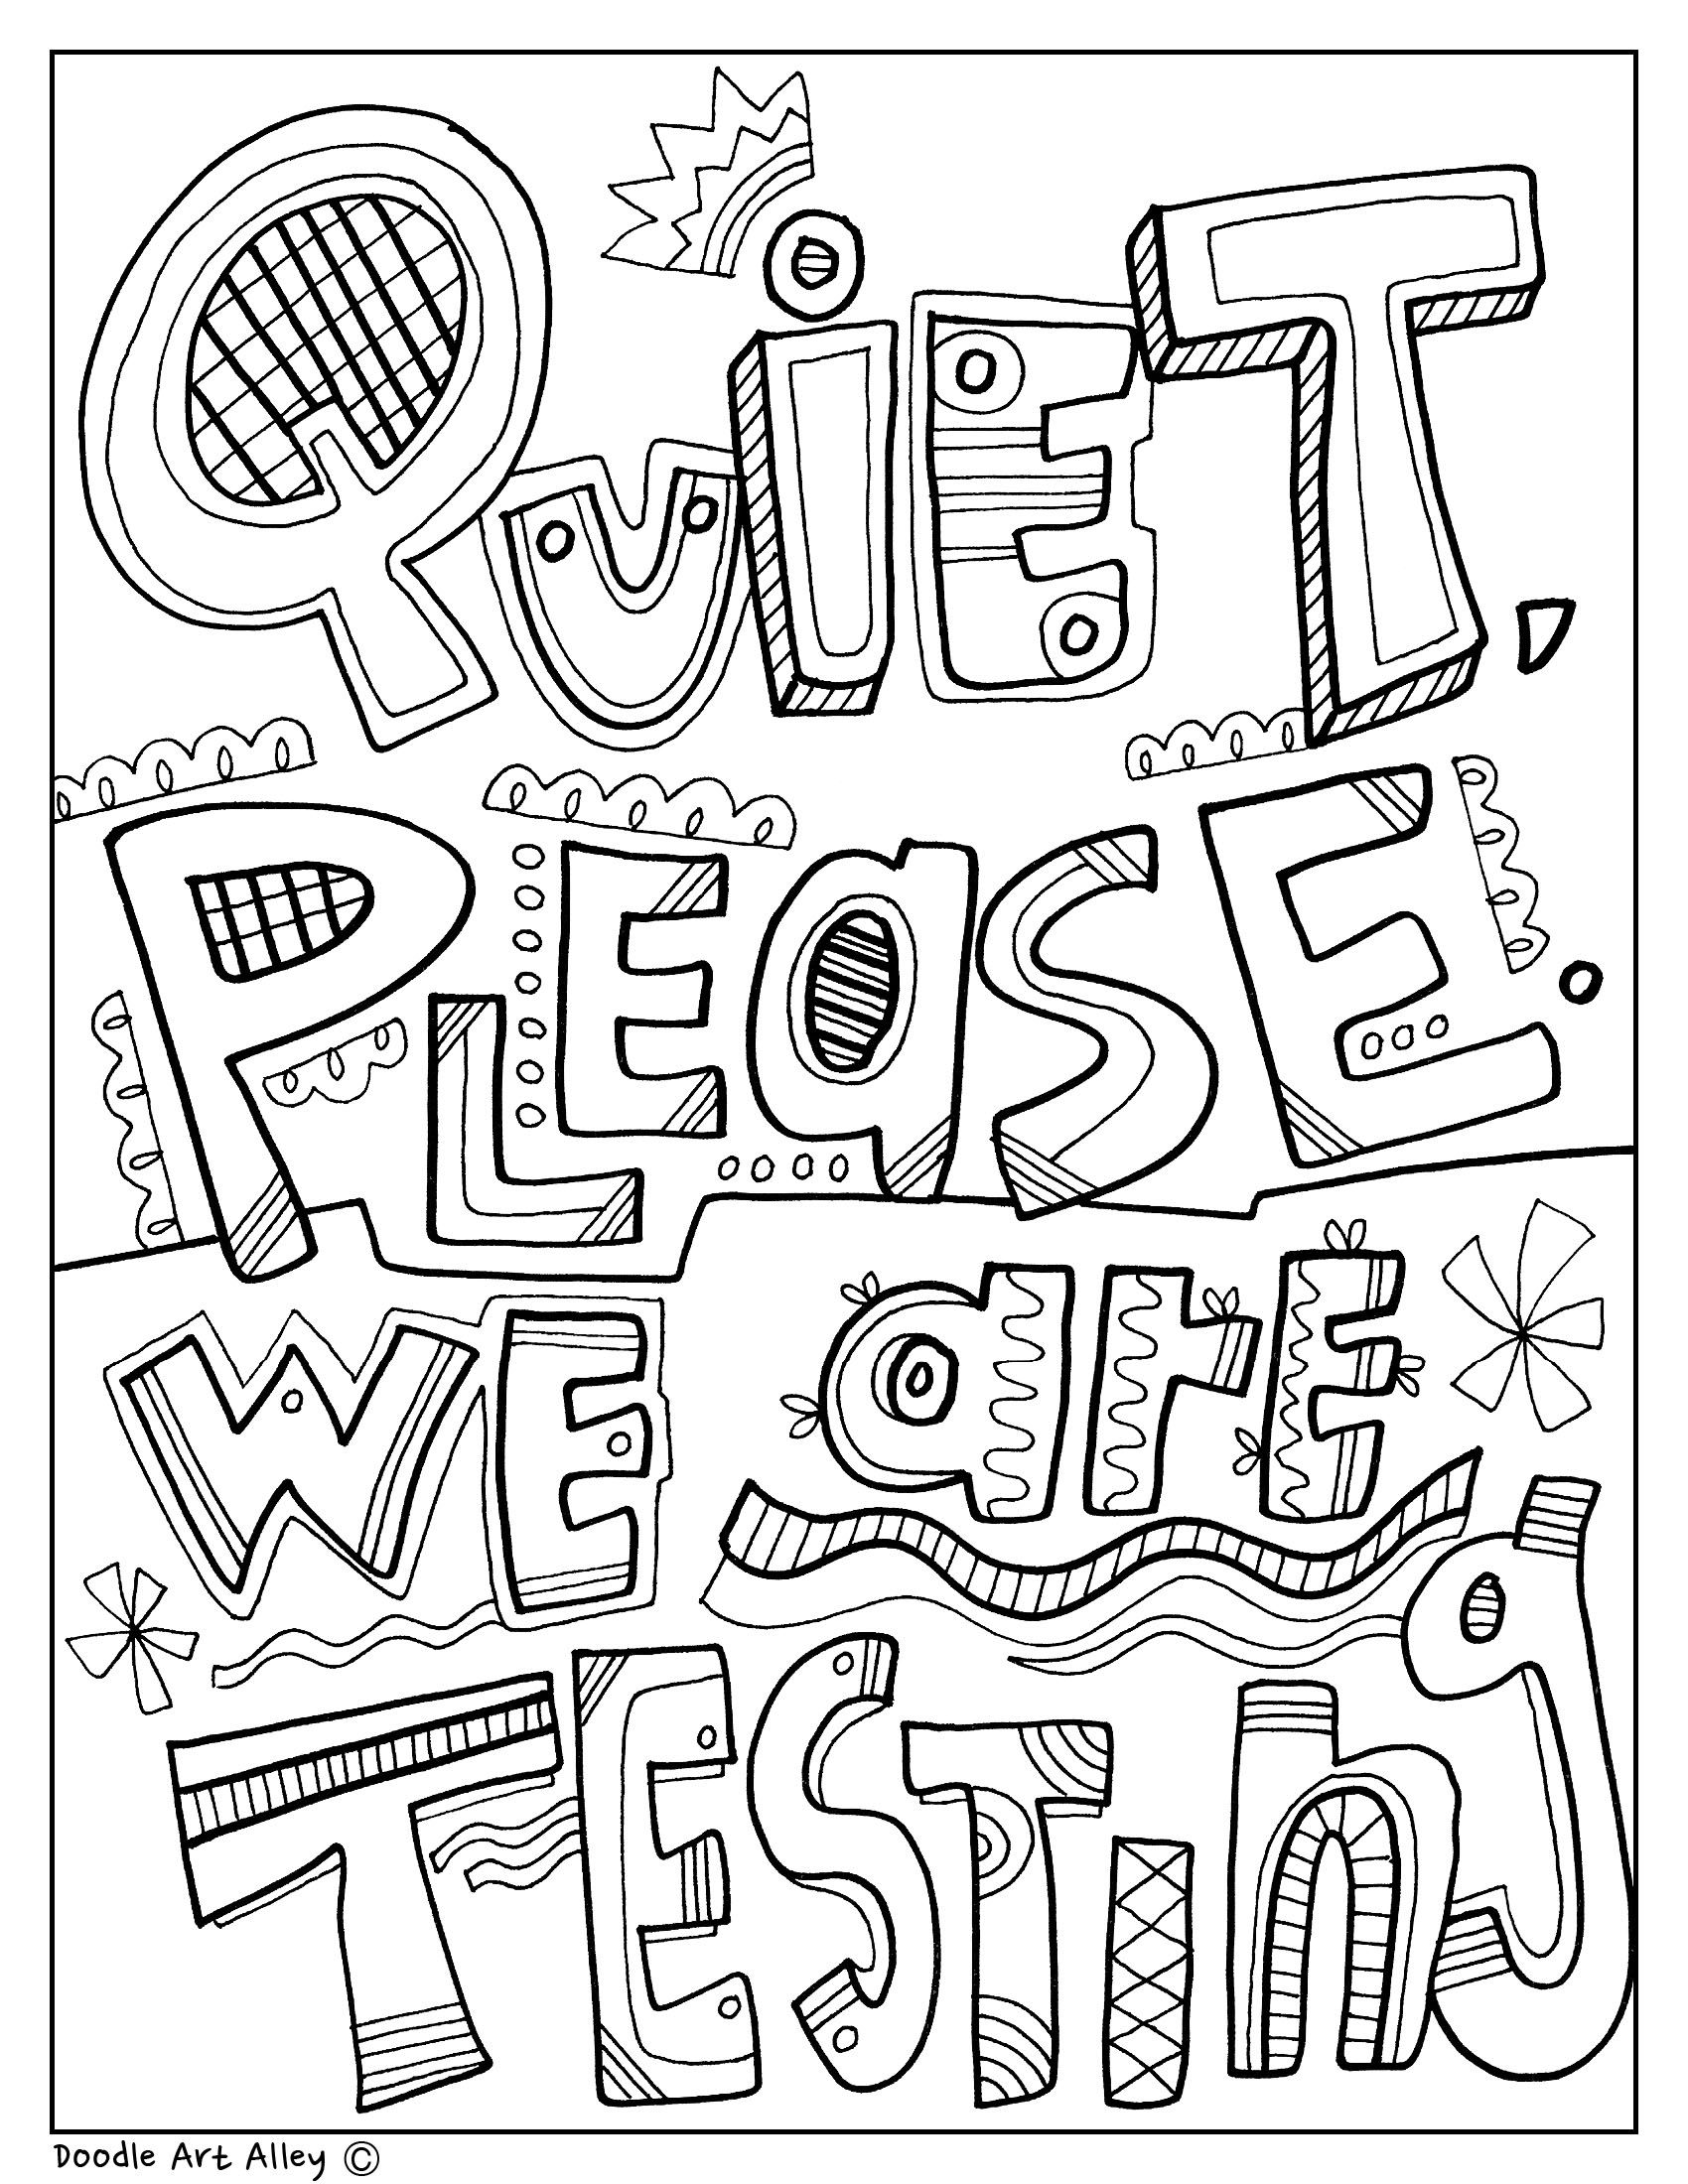 Quiet Please We Are Testing Testing Signs For The Classroom Coloring Pages At Classroom Doodle School Coloring Pages Quote Coloring Pages Color Worksheets